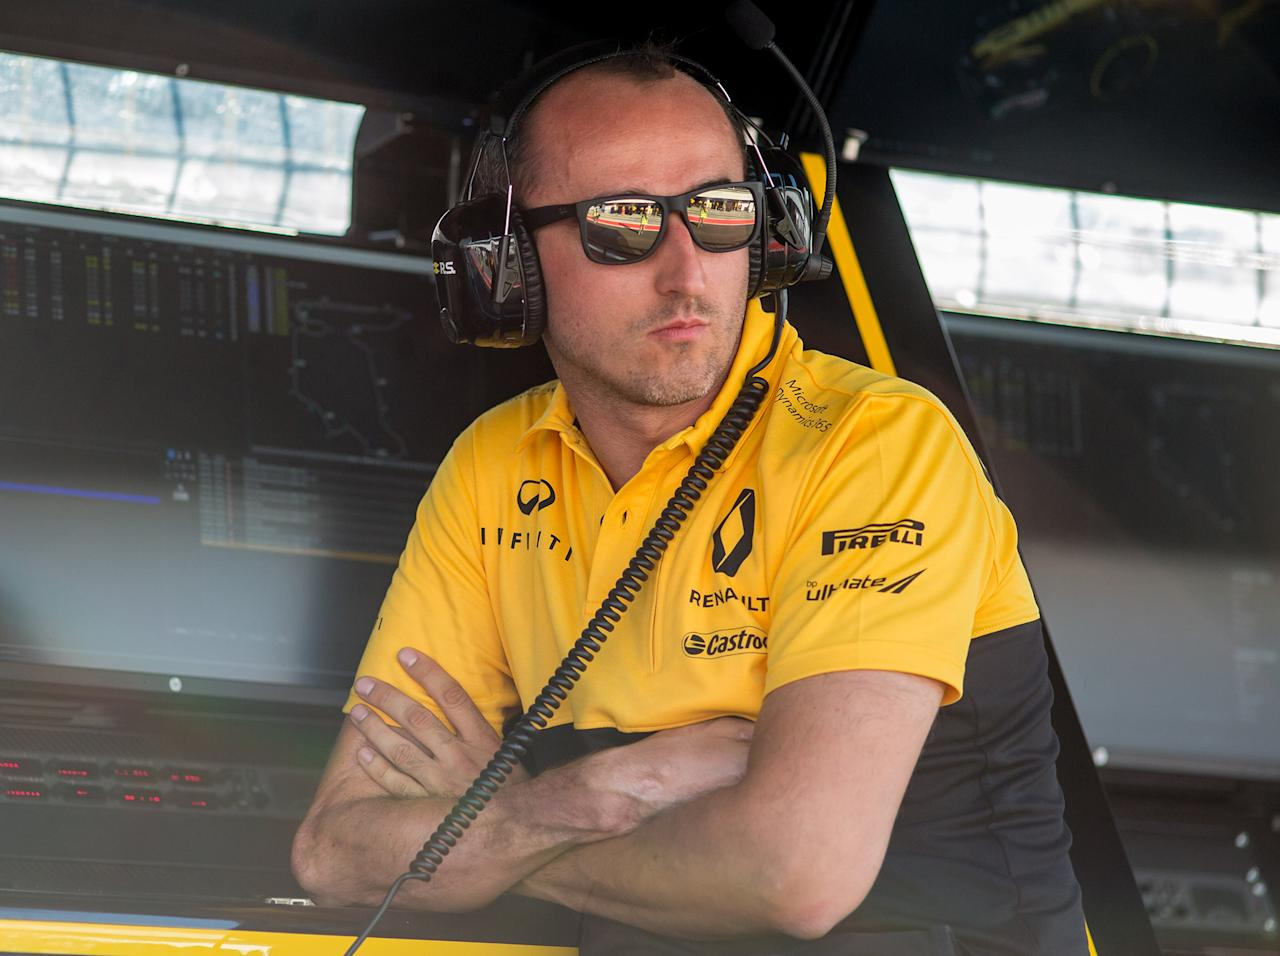 Robert Kubica misses out on F1 comeback after Williams announce Sergey Sirotkin as new driver